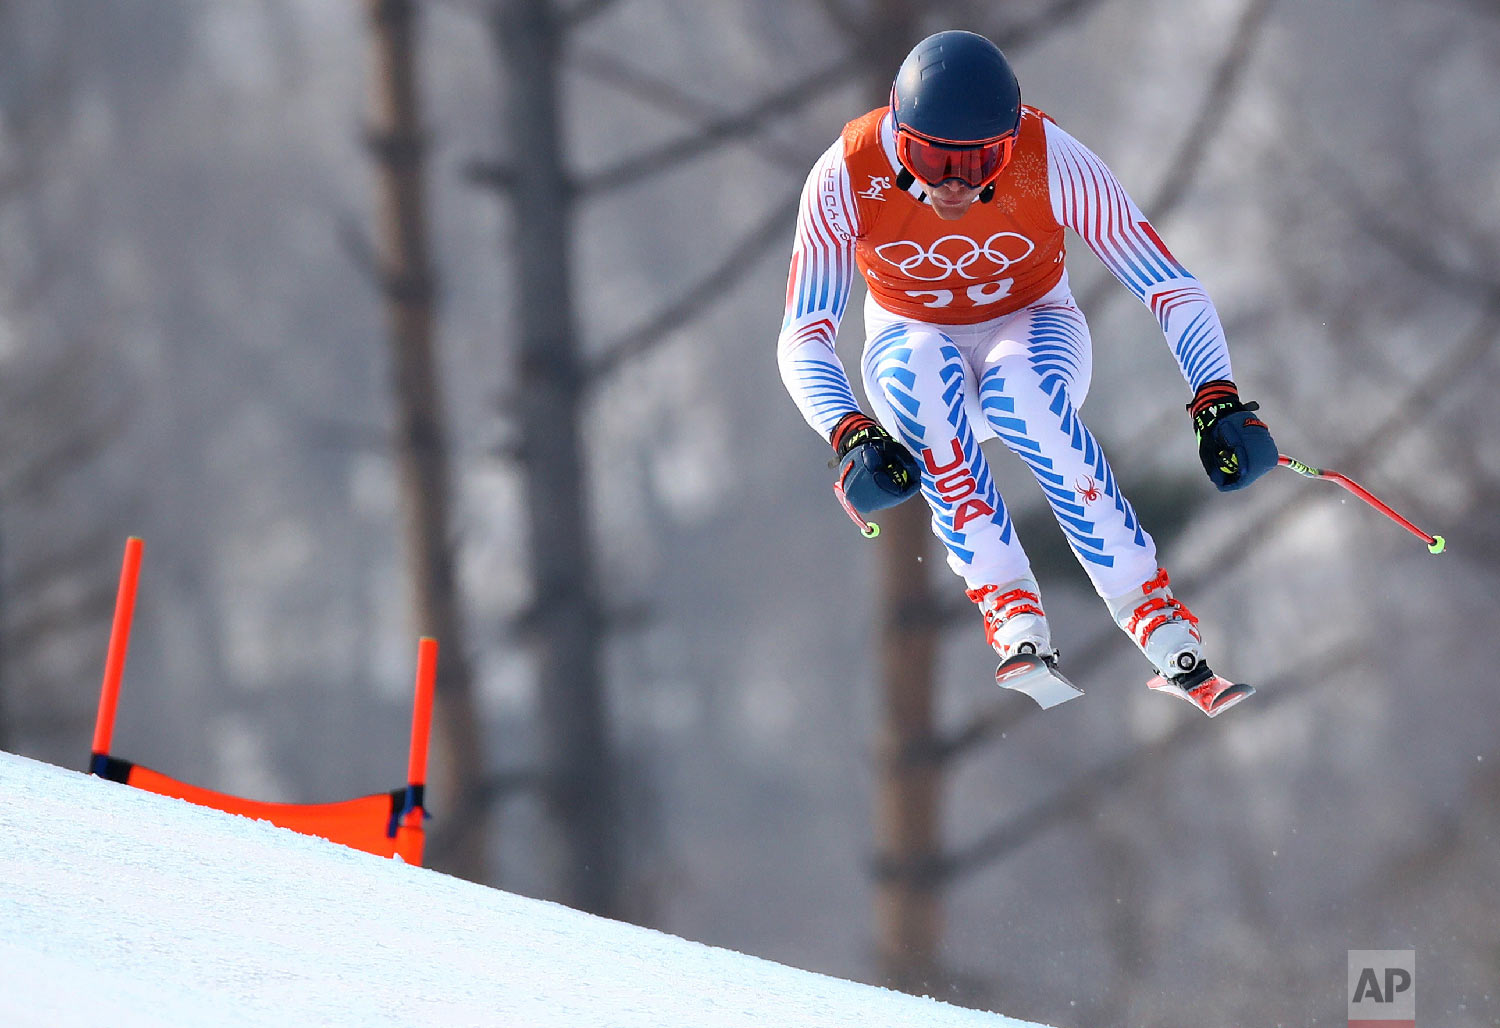 United States' Wiley Maple makes a jump during men's downhill training at the 2018 Winter Olympics in Jeongseon, South Korea, Saturday, Feb. 10, 2018. (AP Photo/Alessandro Trovati)